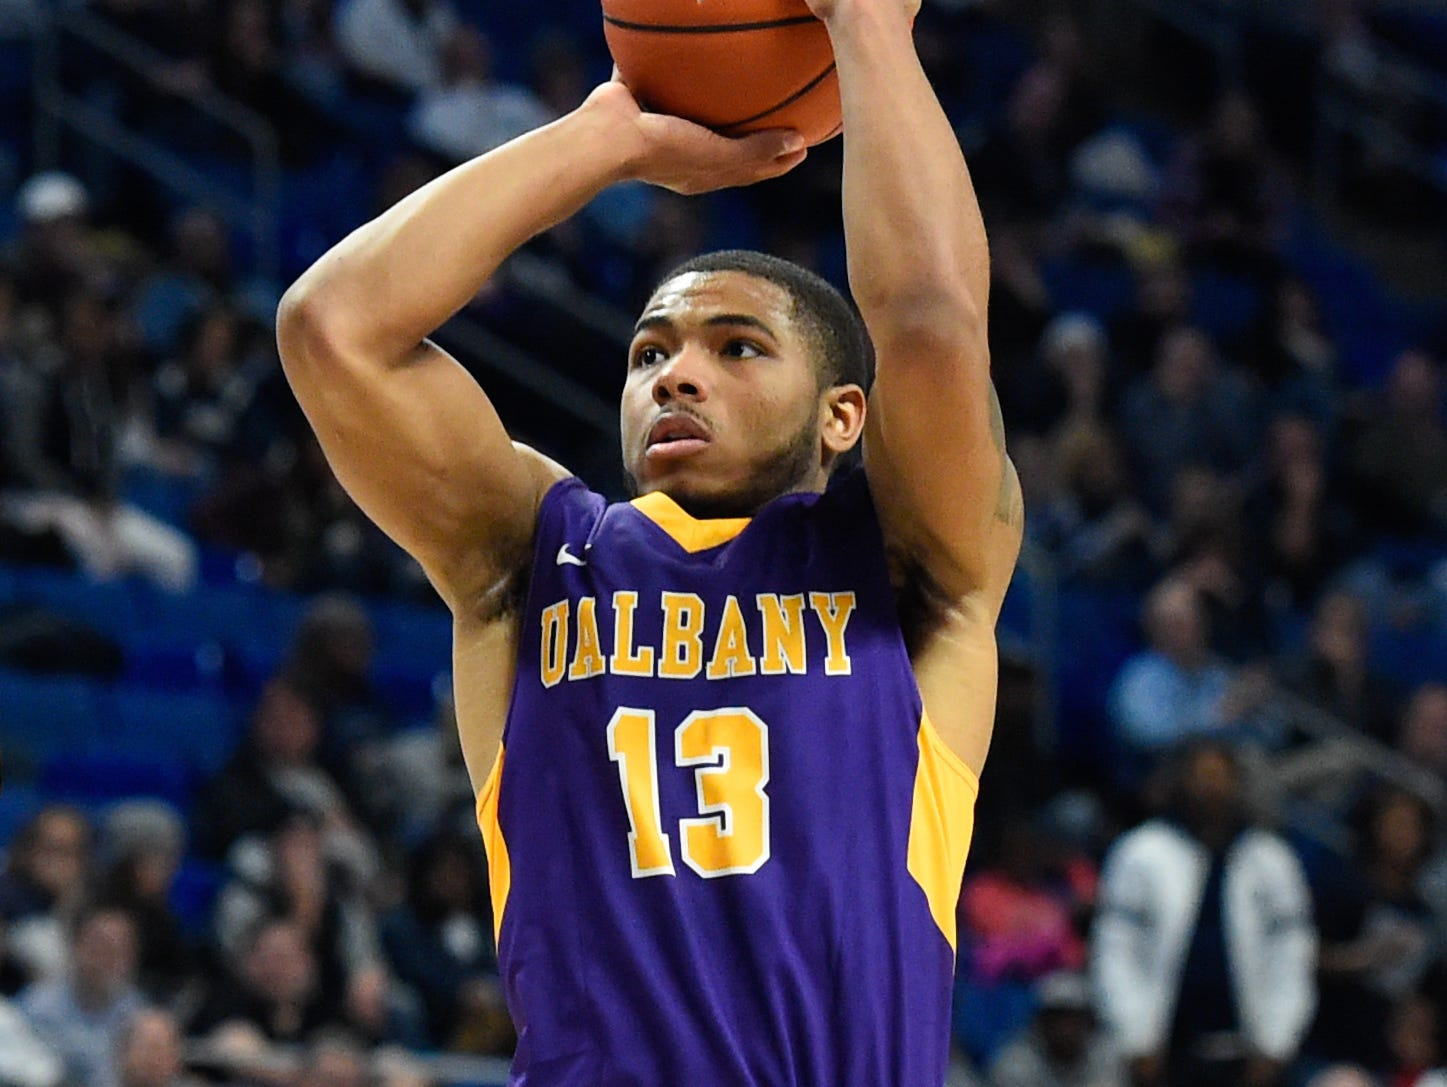 Nov 11, 2016; University Park, PA, USA; Albany Great Danes guard David Nichols (13) shoots the ball against the Penn State Nittany Lions during the second half at the Bryce Jordan Center. Albany defeated Penn State 87-81. Mandatory Credit: Rich Barnes-USA TODAY Sports